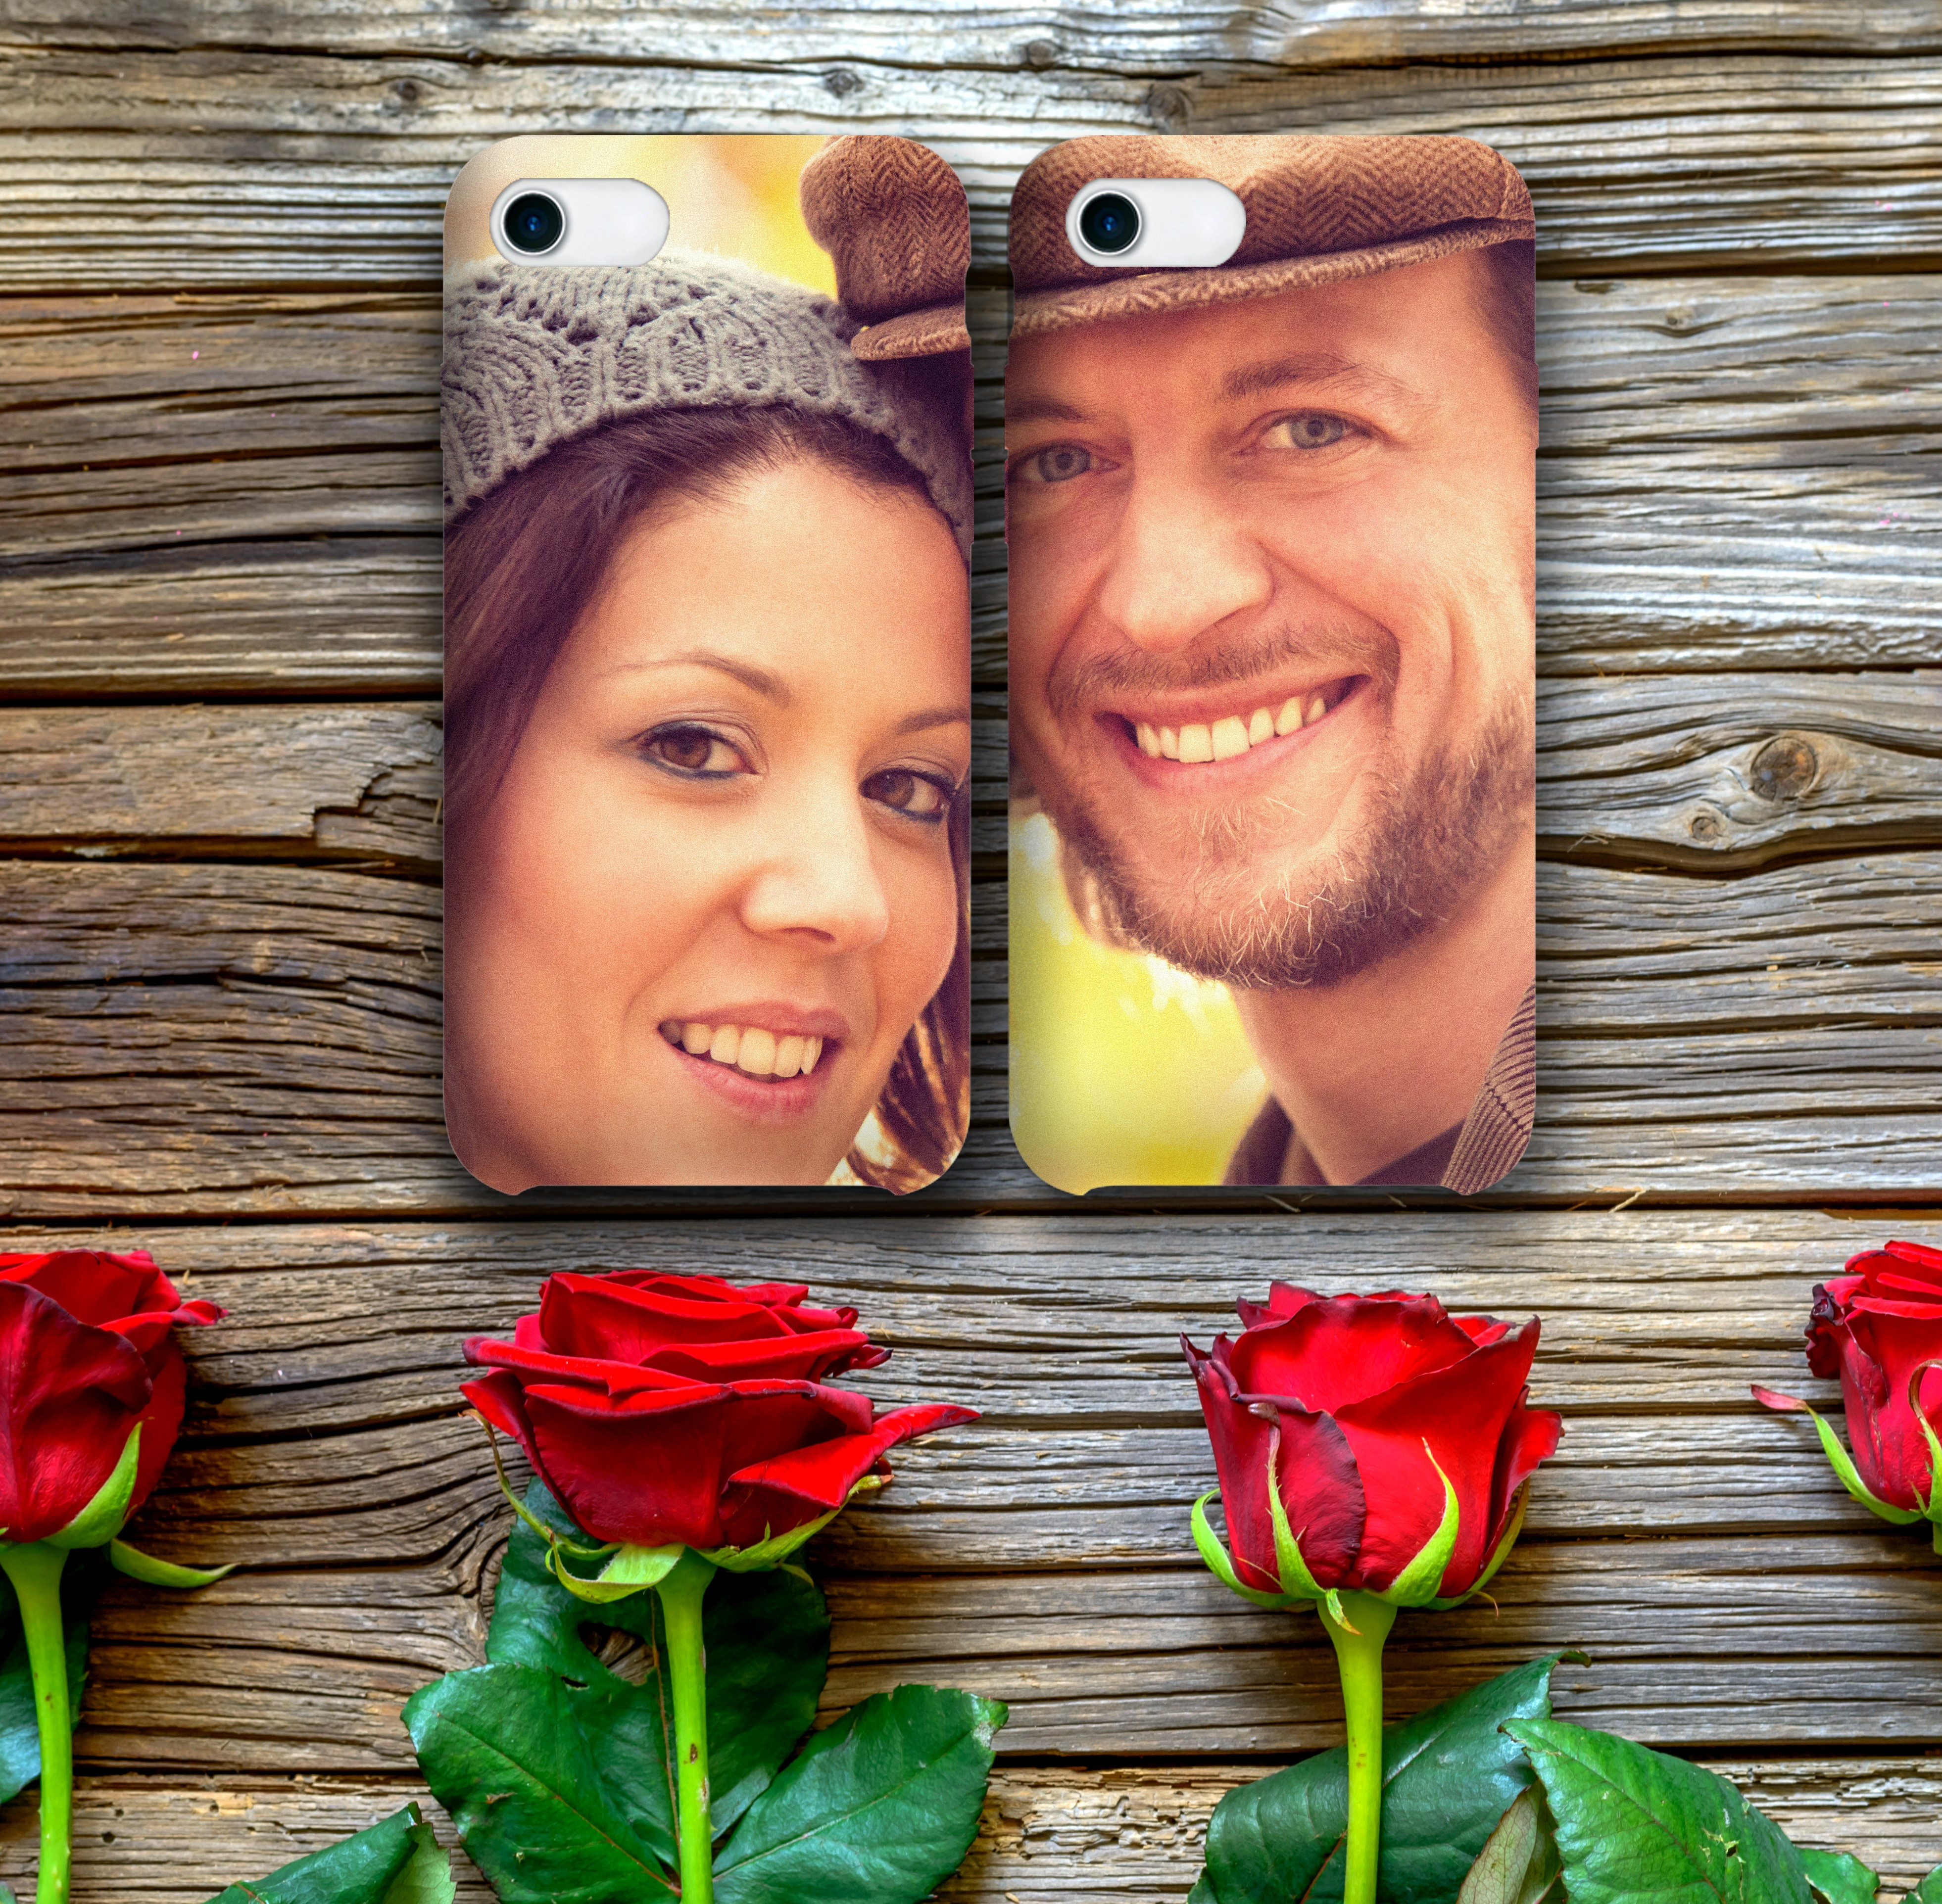 photos printed on mobile phone cases